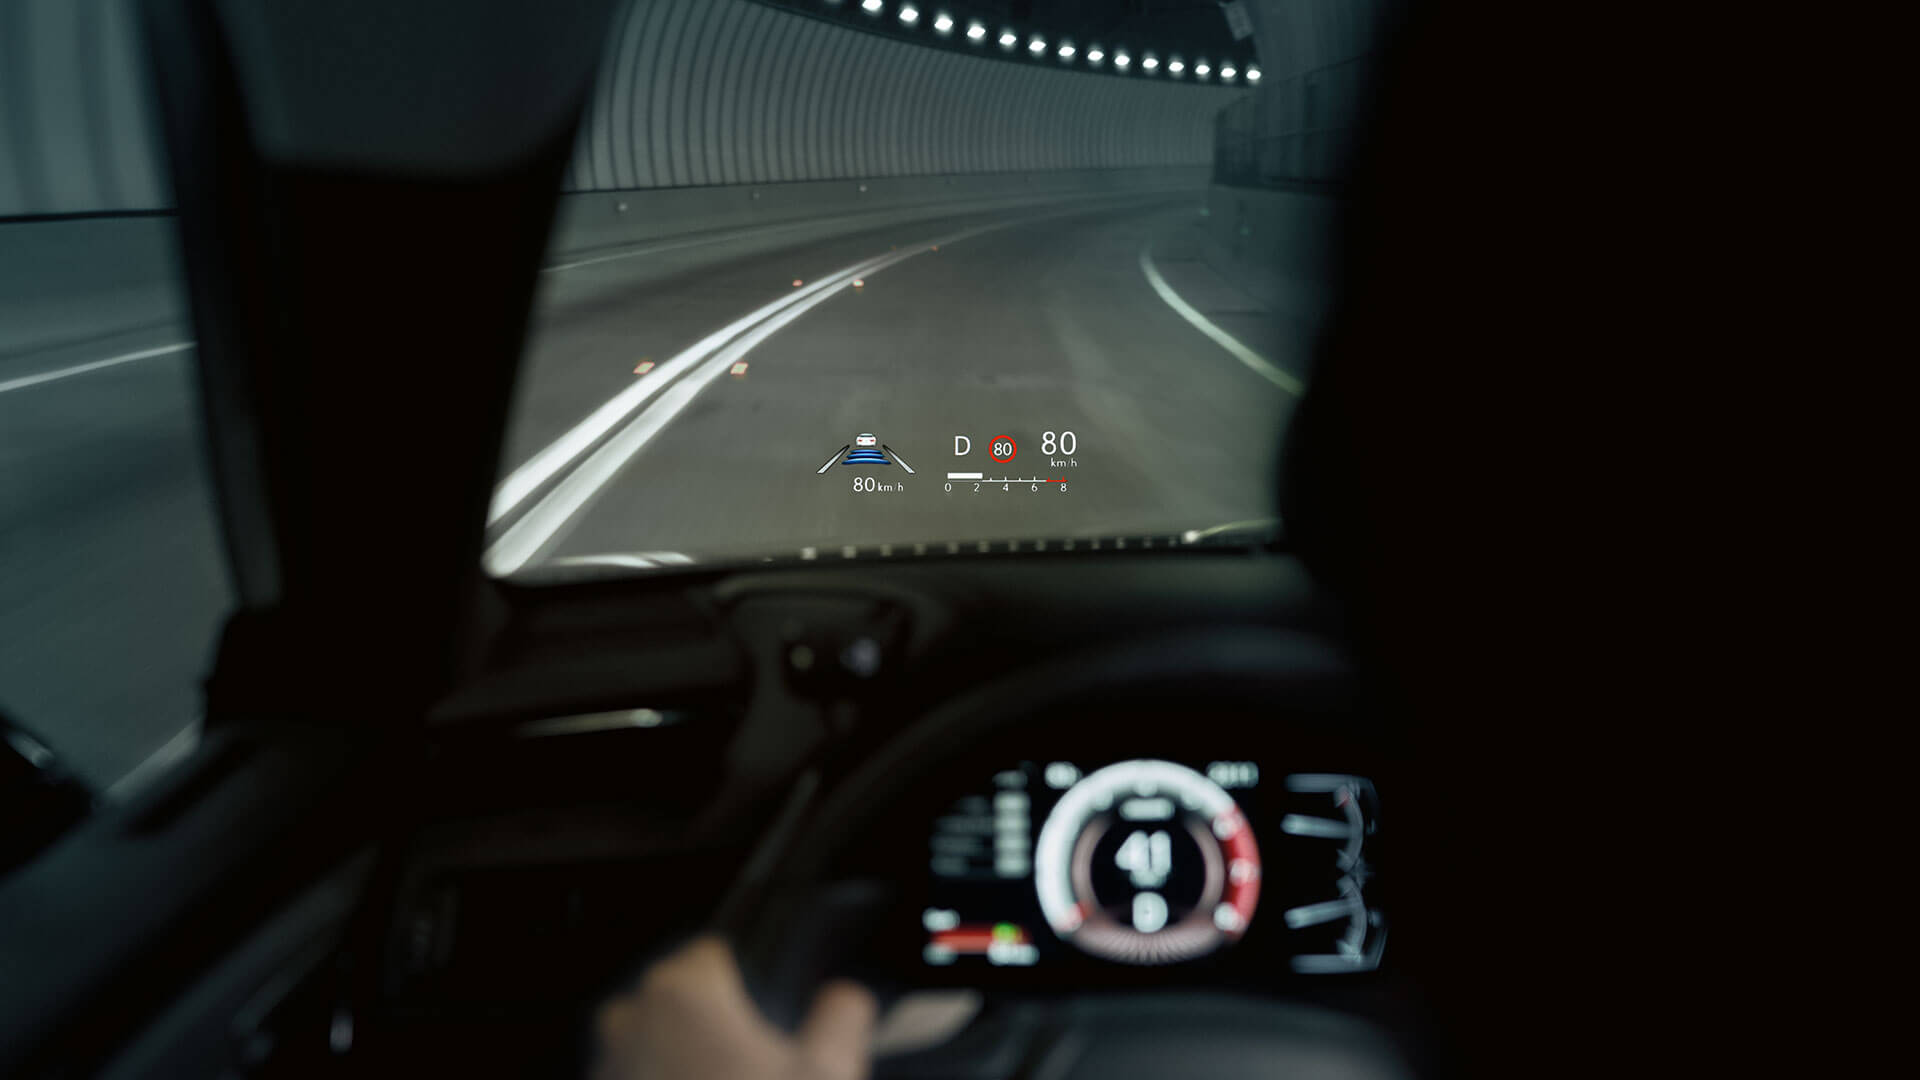 2019 lexus es hybrid experience feature heads up display